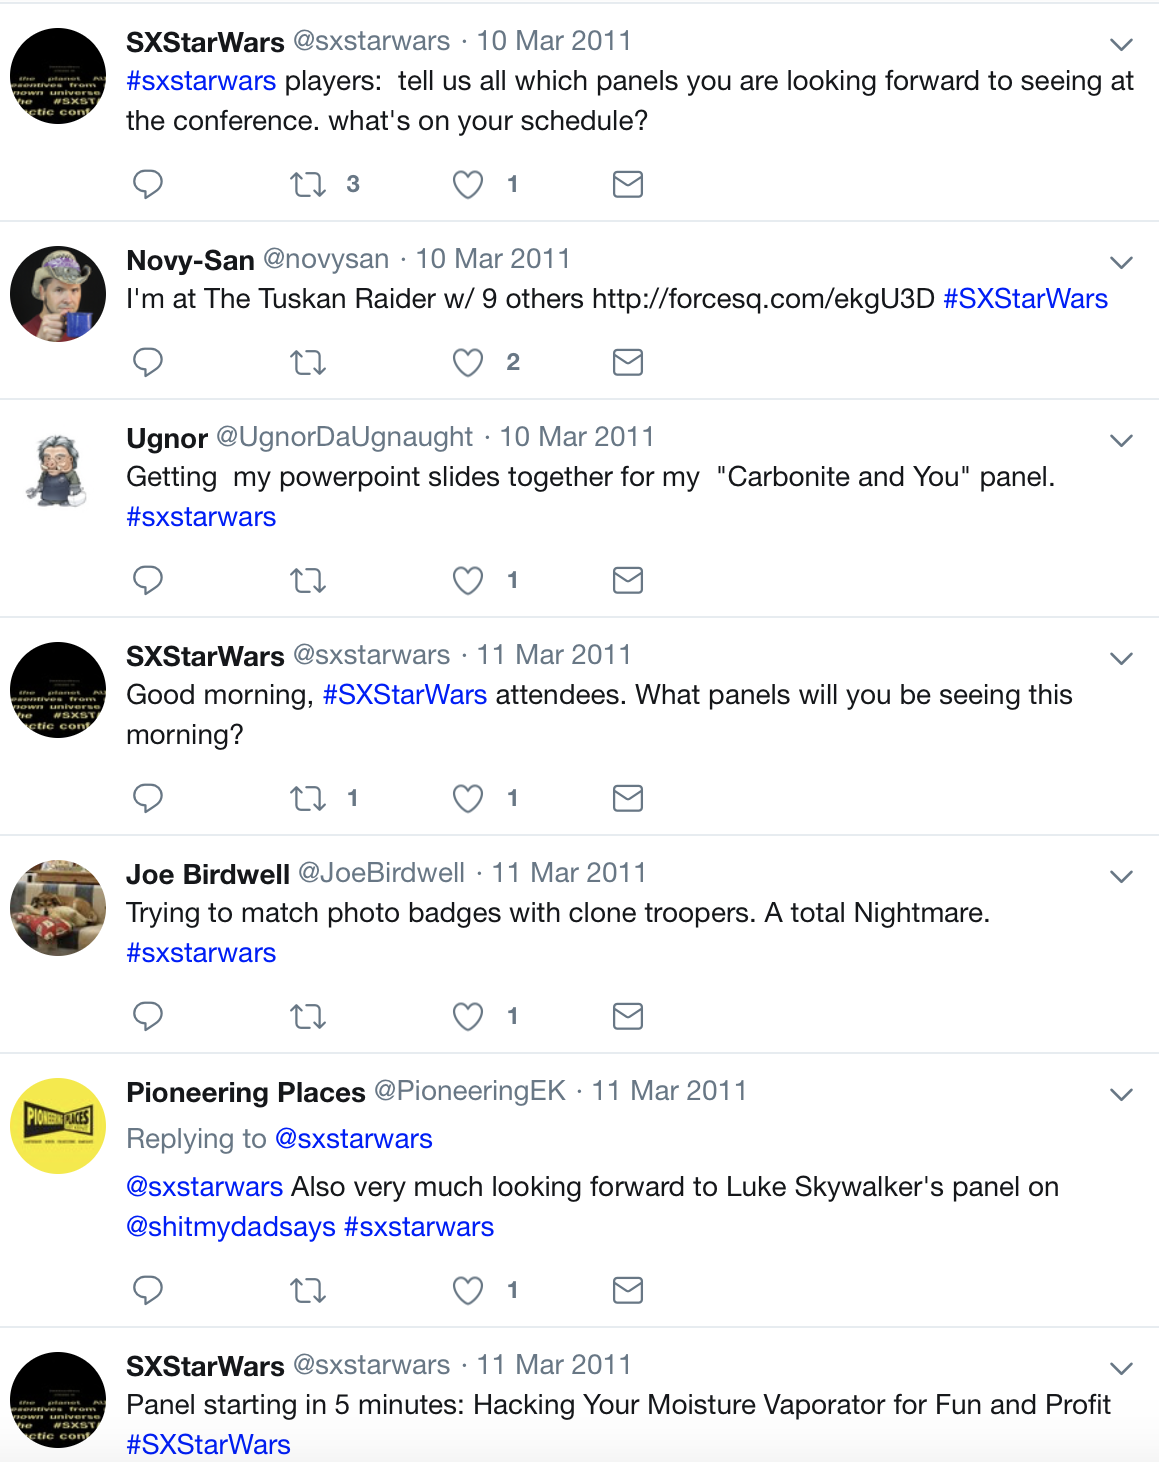 The #SXStarWars Conference - A fictional SXSW-style conference held in the Star Wars universe. Participants were invited to share their individual experiences and describe the panels, parties, and events they attended.io9: The 10 best tweets from South By Star Wars